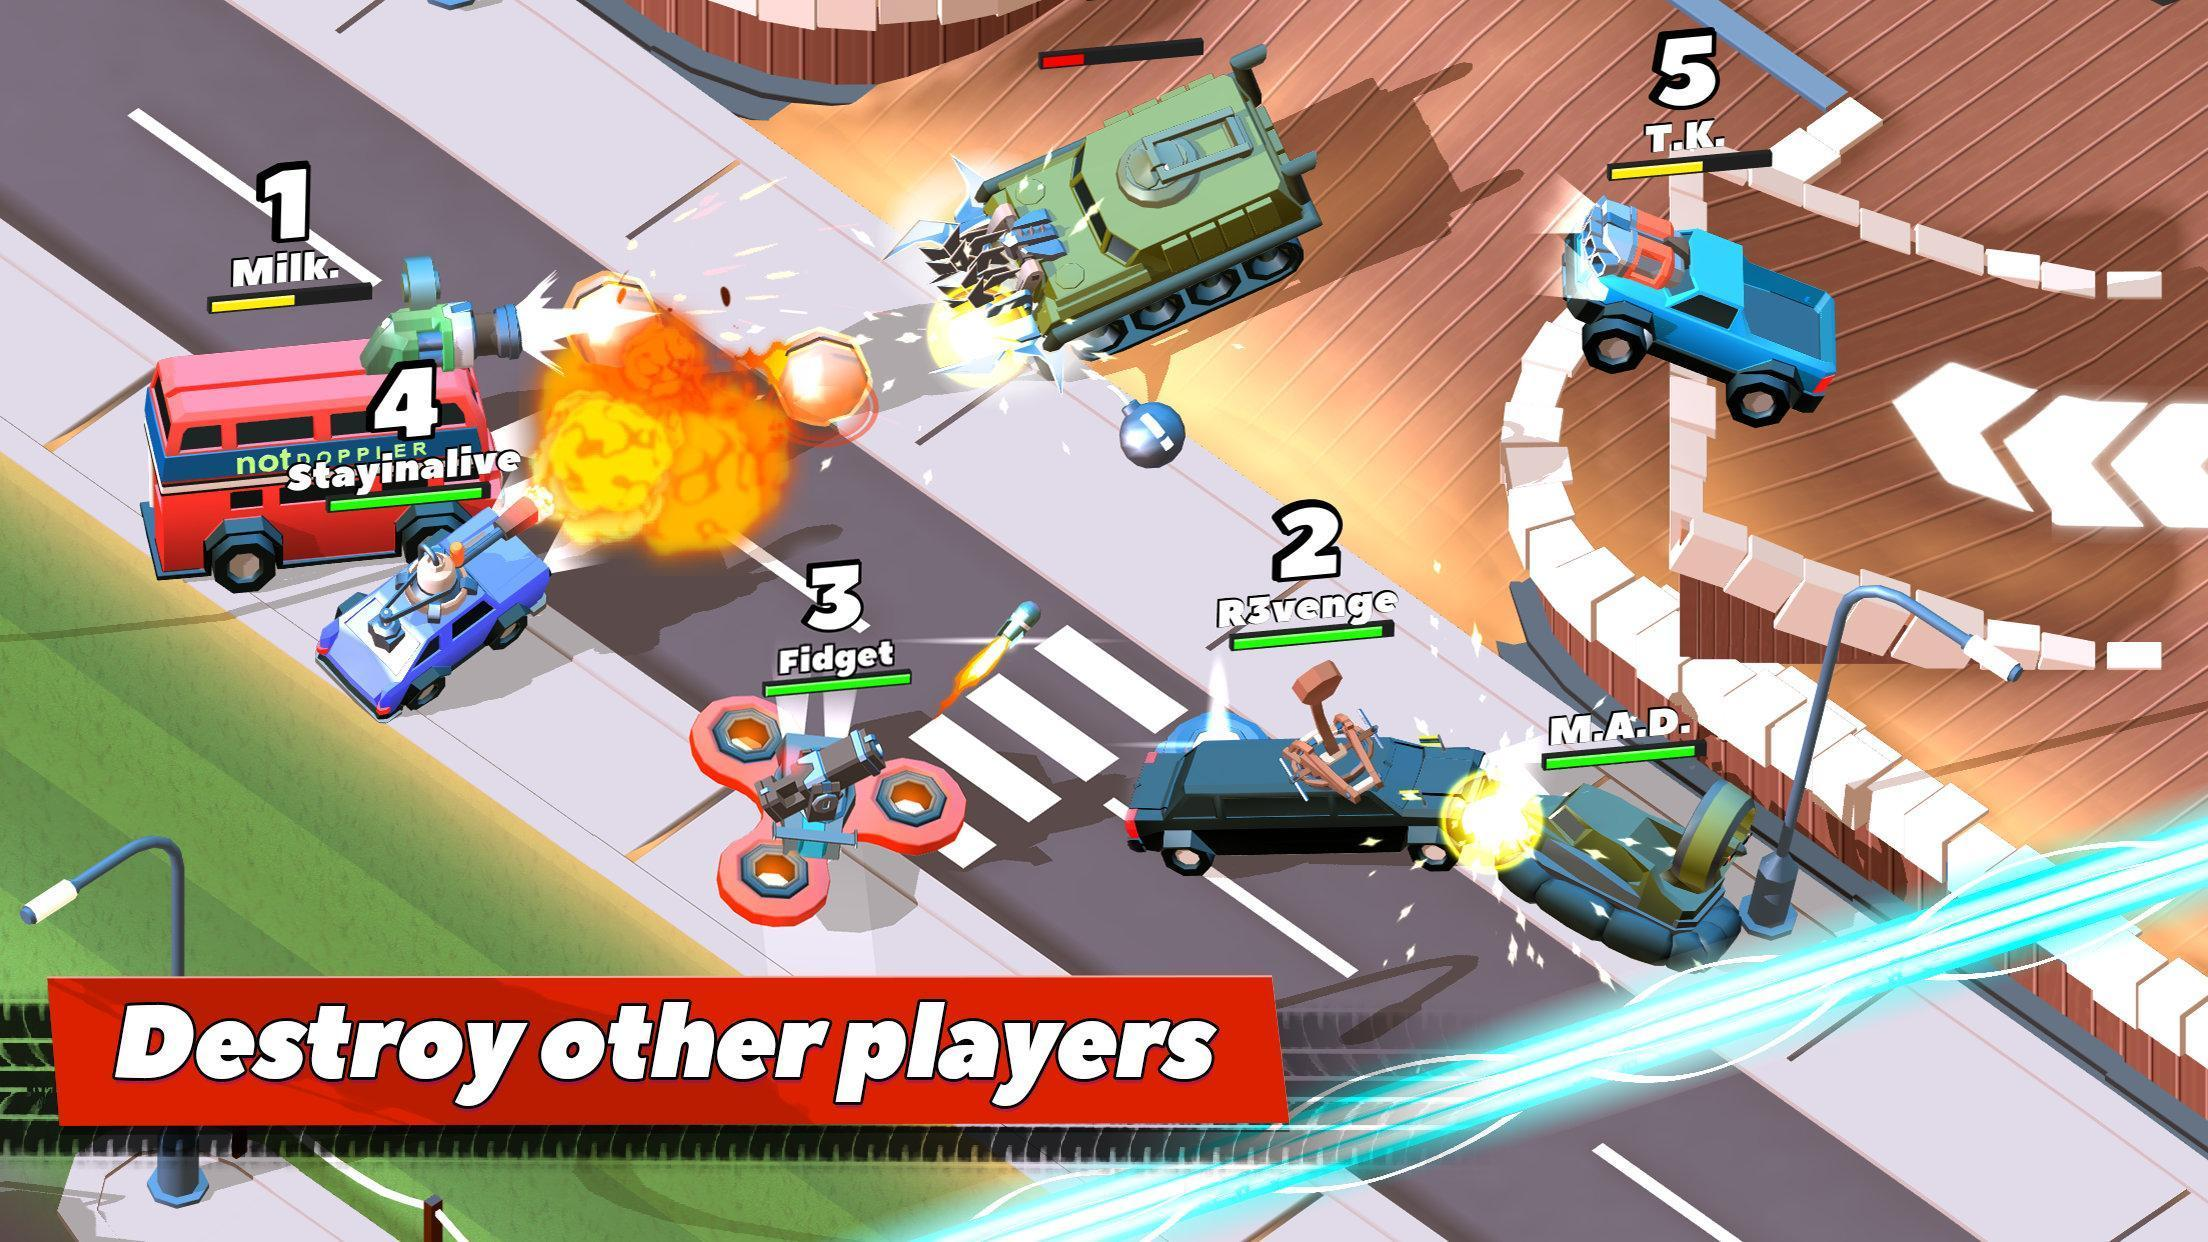 [Quick way] Download Crash of Cars Mod APK